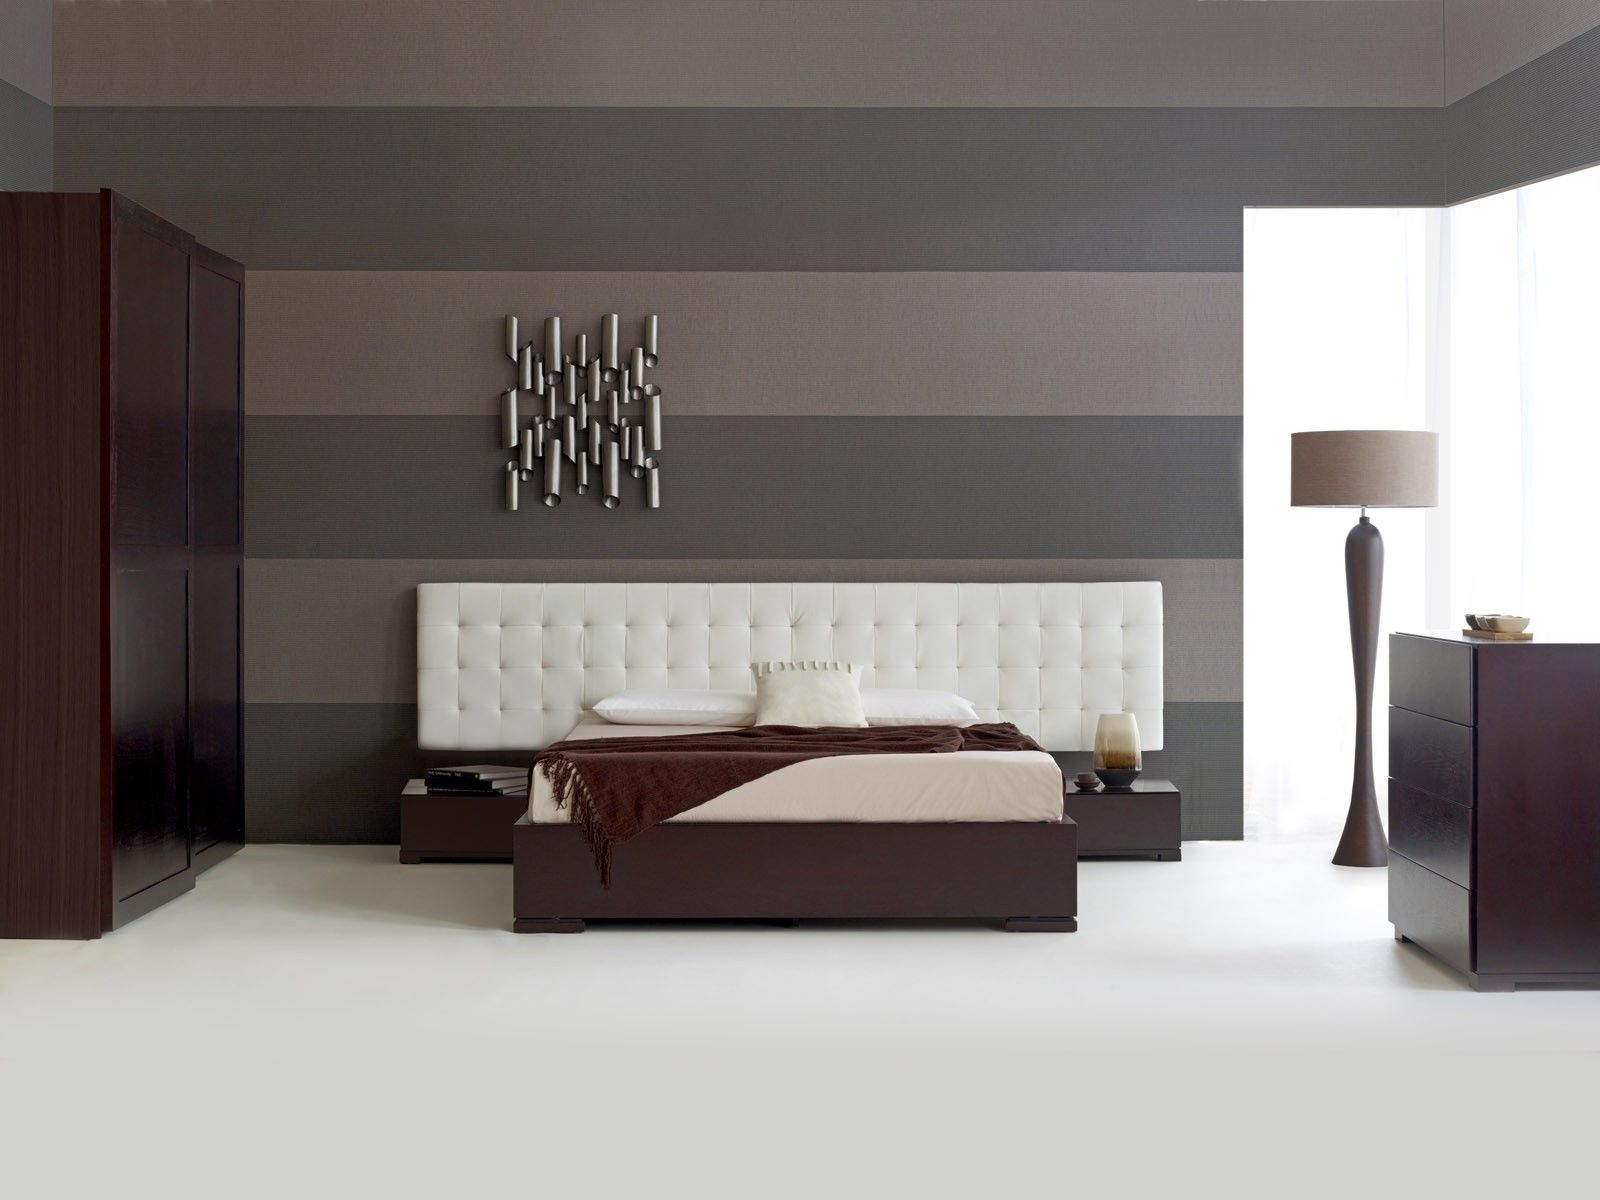 Headboard Alternative Ideas Contemporary Headboard Ideas For Your Modern Bedroom Headboard